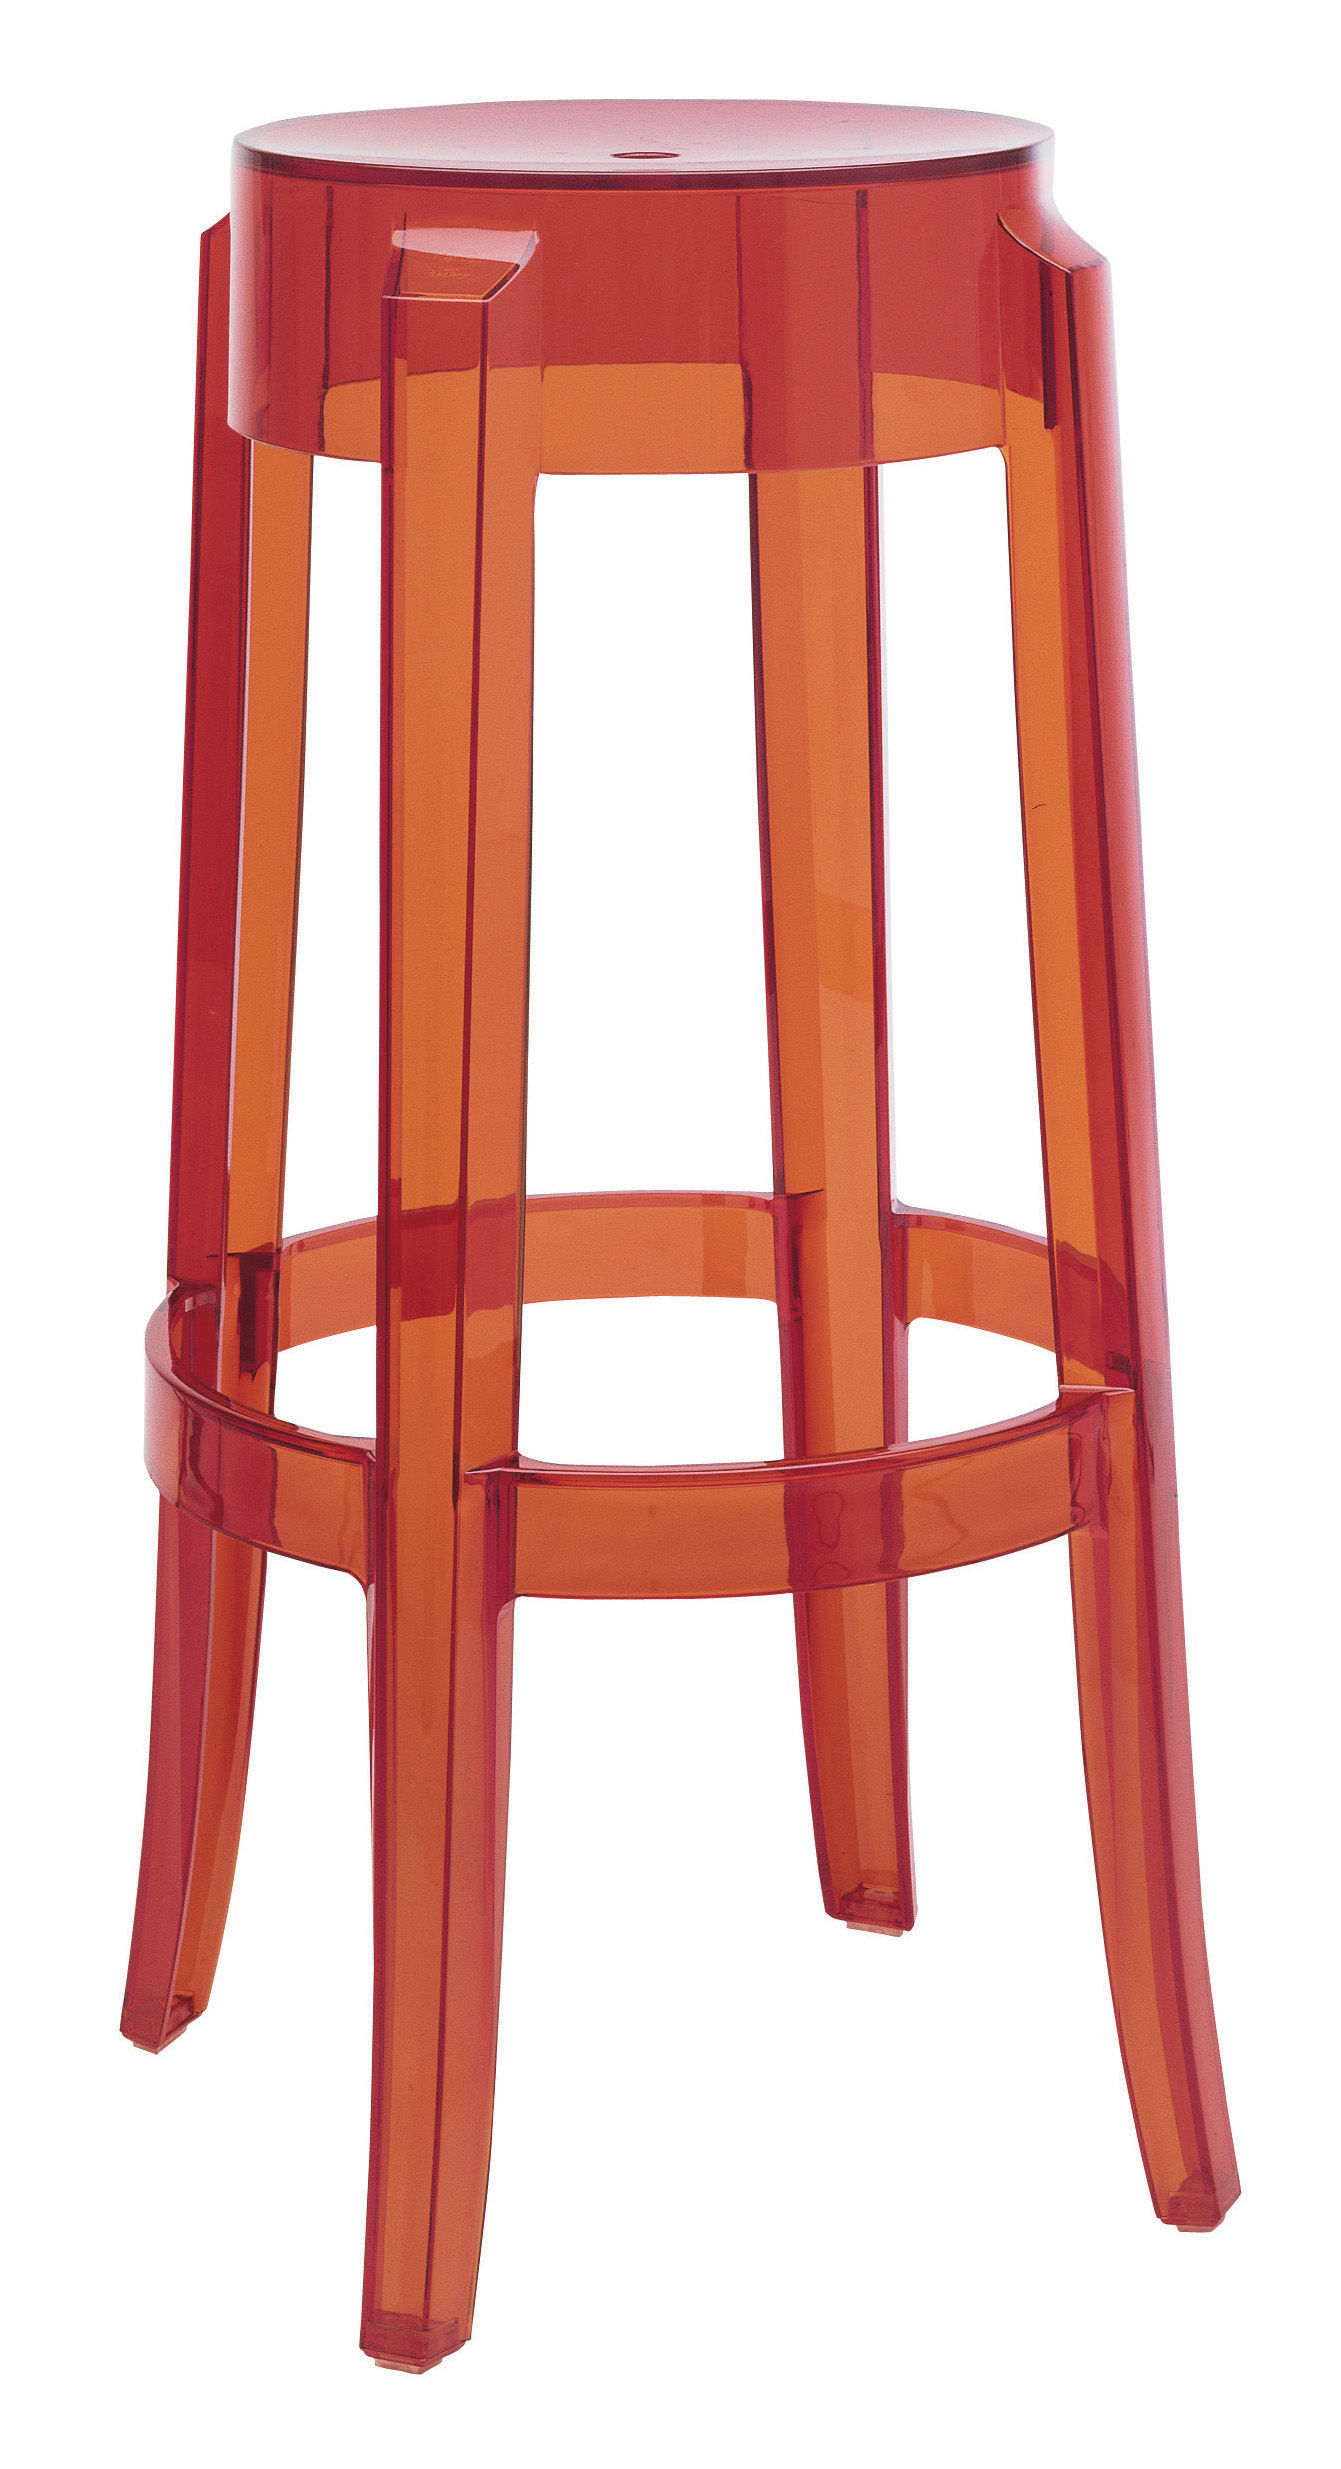 Tabouret haut empilable charles ghost h 75 cm plastique orange kartell - Tabouret plastique empilable ...